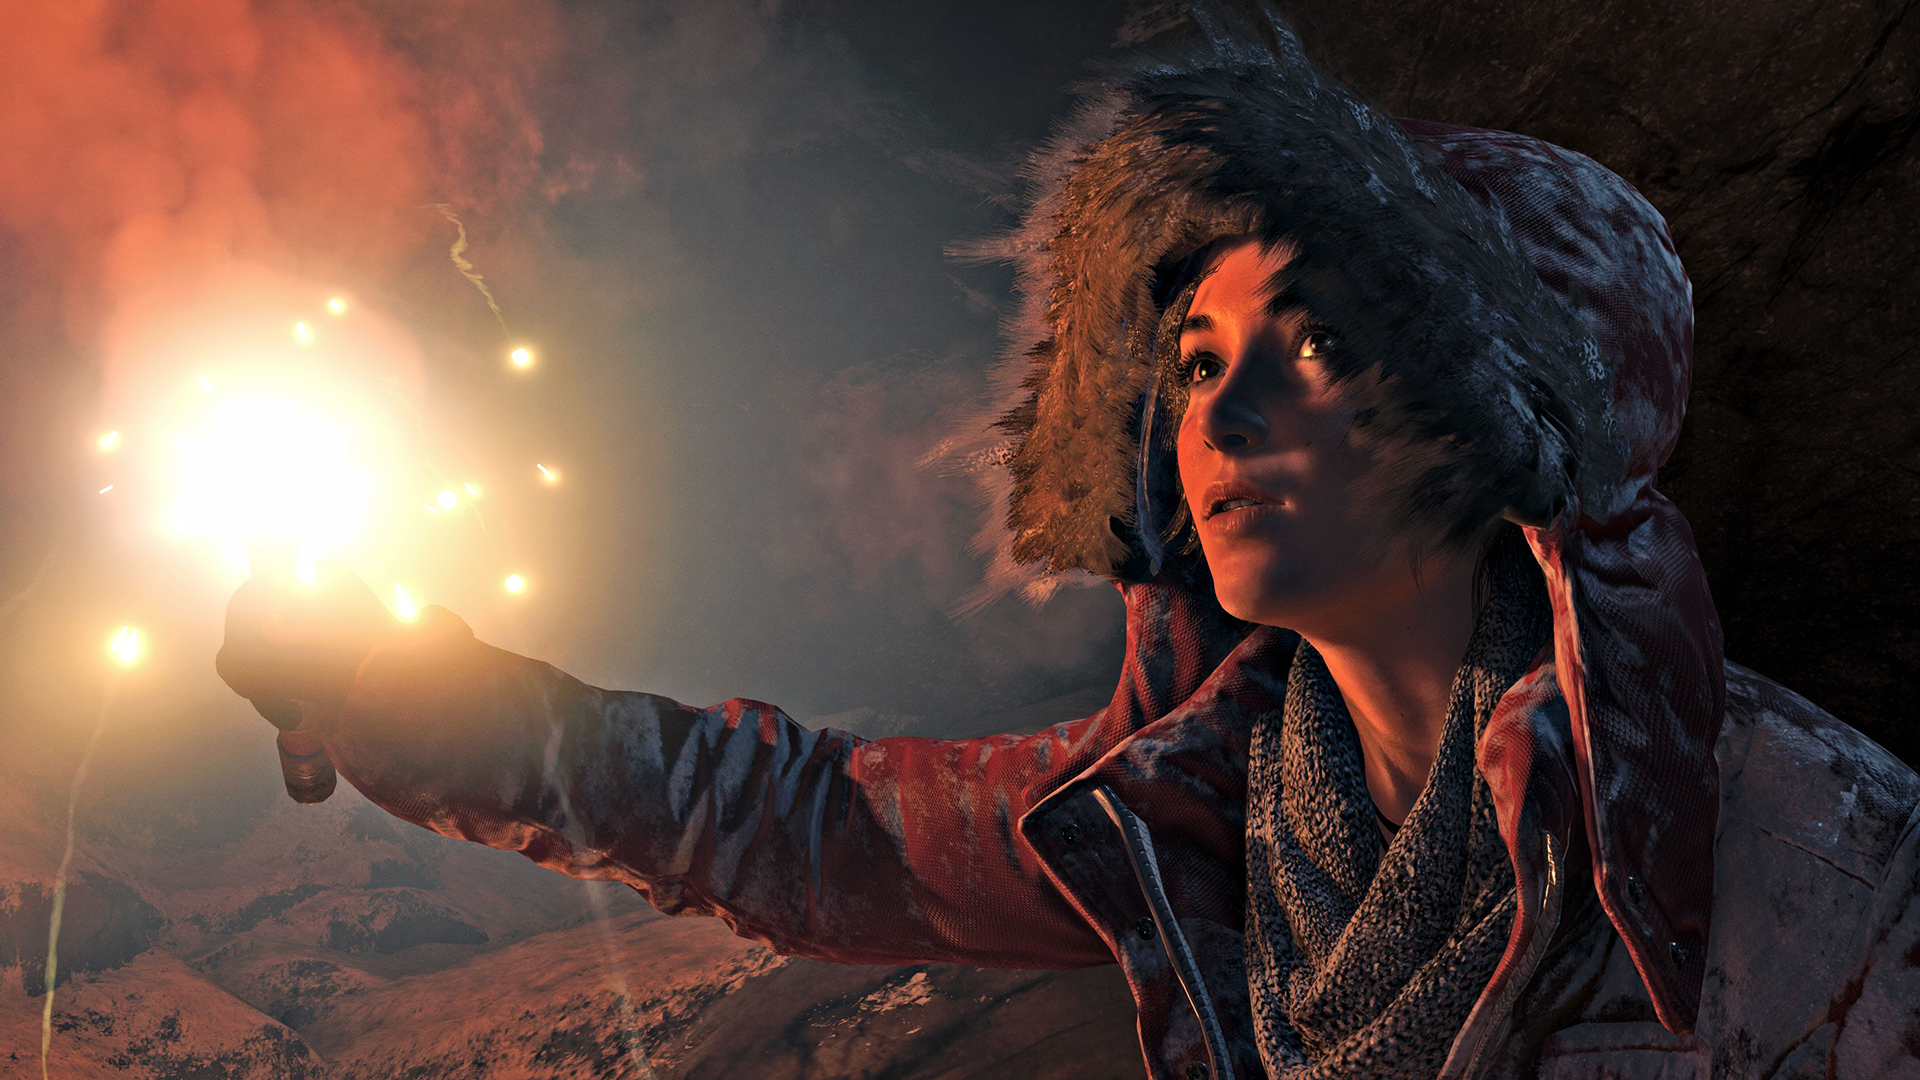 Rise of the Tomb Raider to receive 4K patch and other enhancements on Xbox One X.